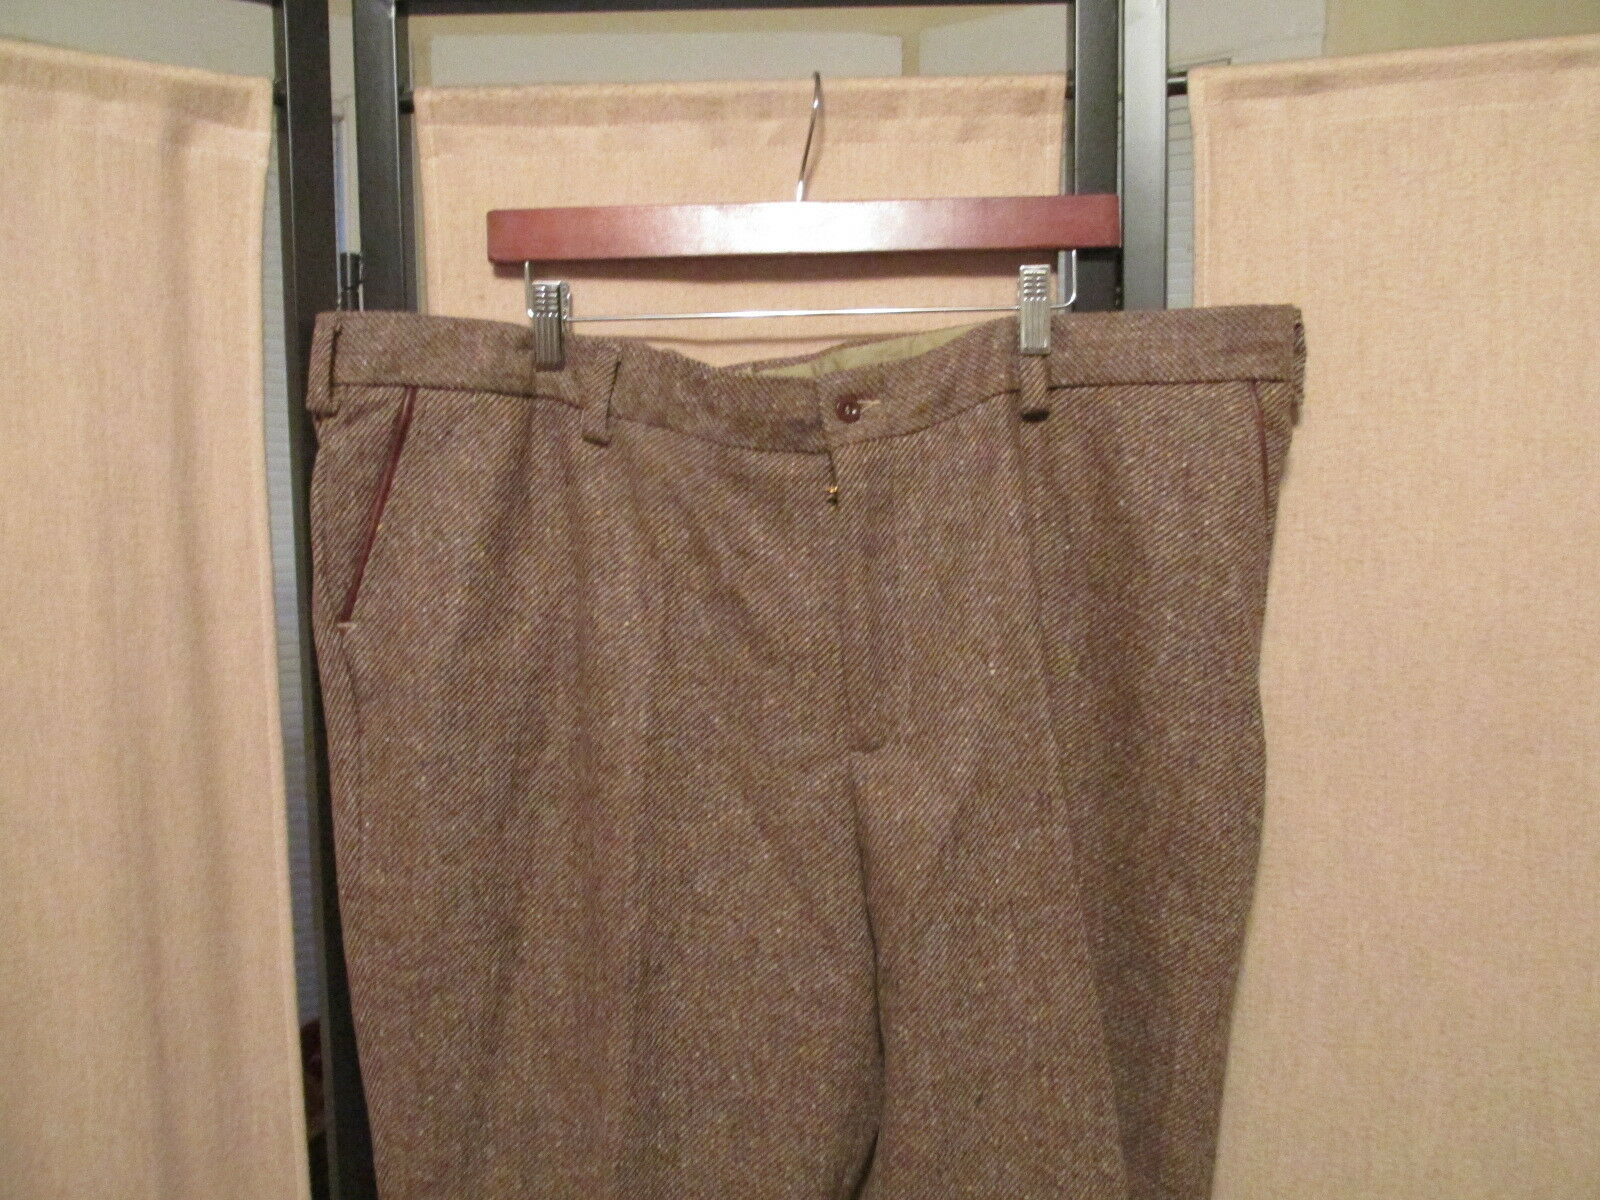 Bills Khakis Model 3 Trim Fit Flat Front 100% wool pants size 46